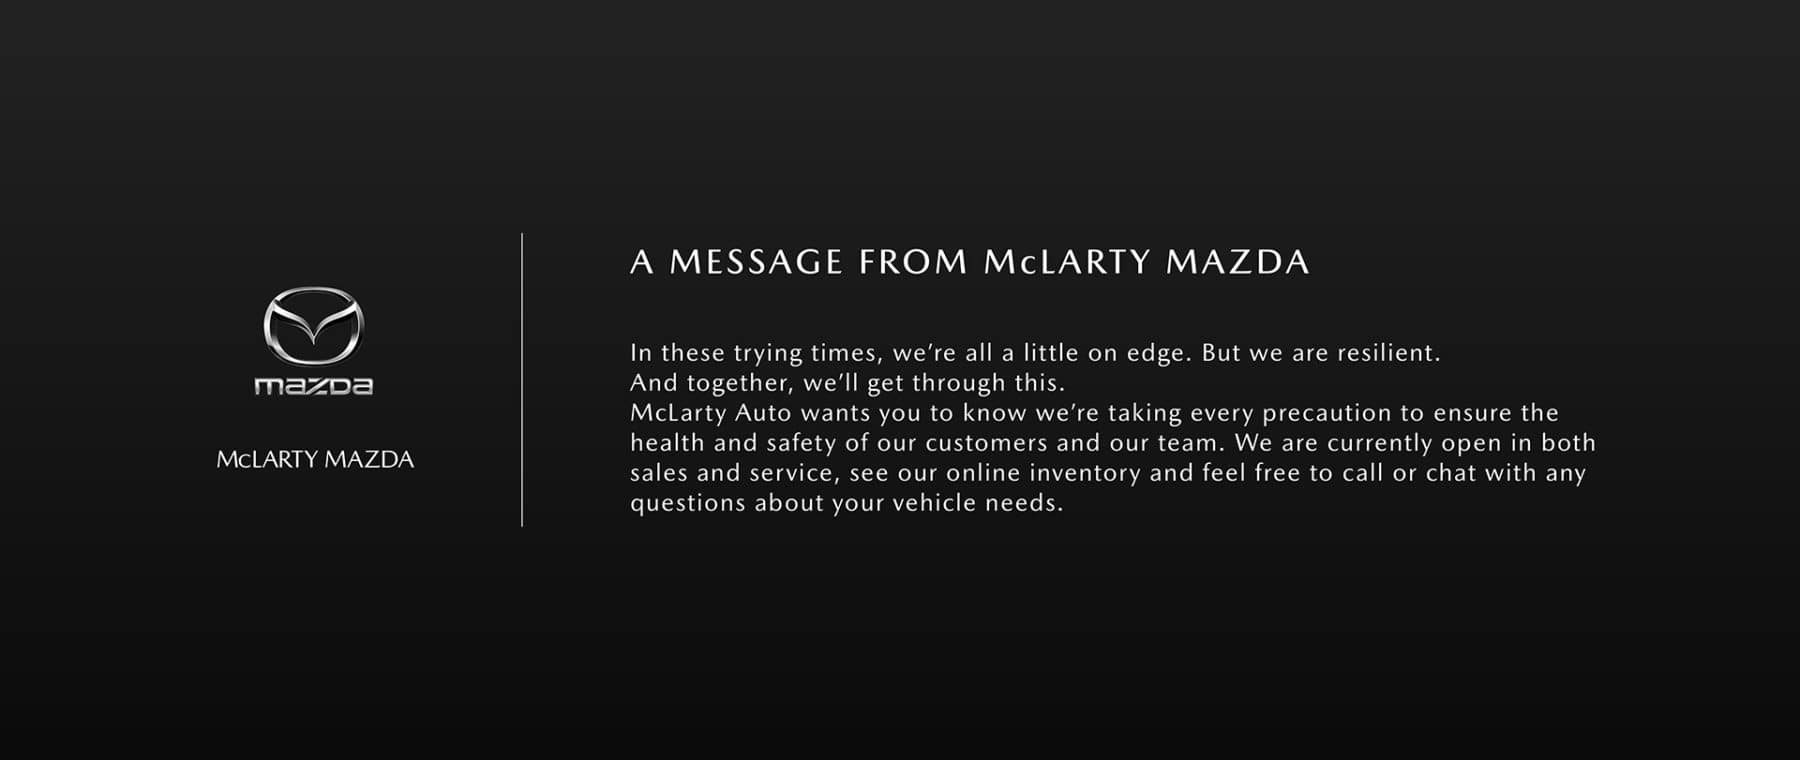 A Message from McLarty Mazda